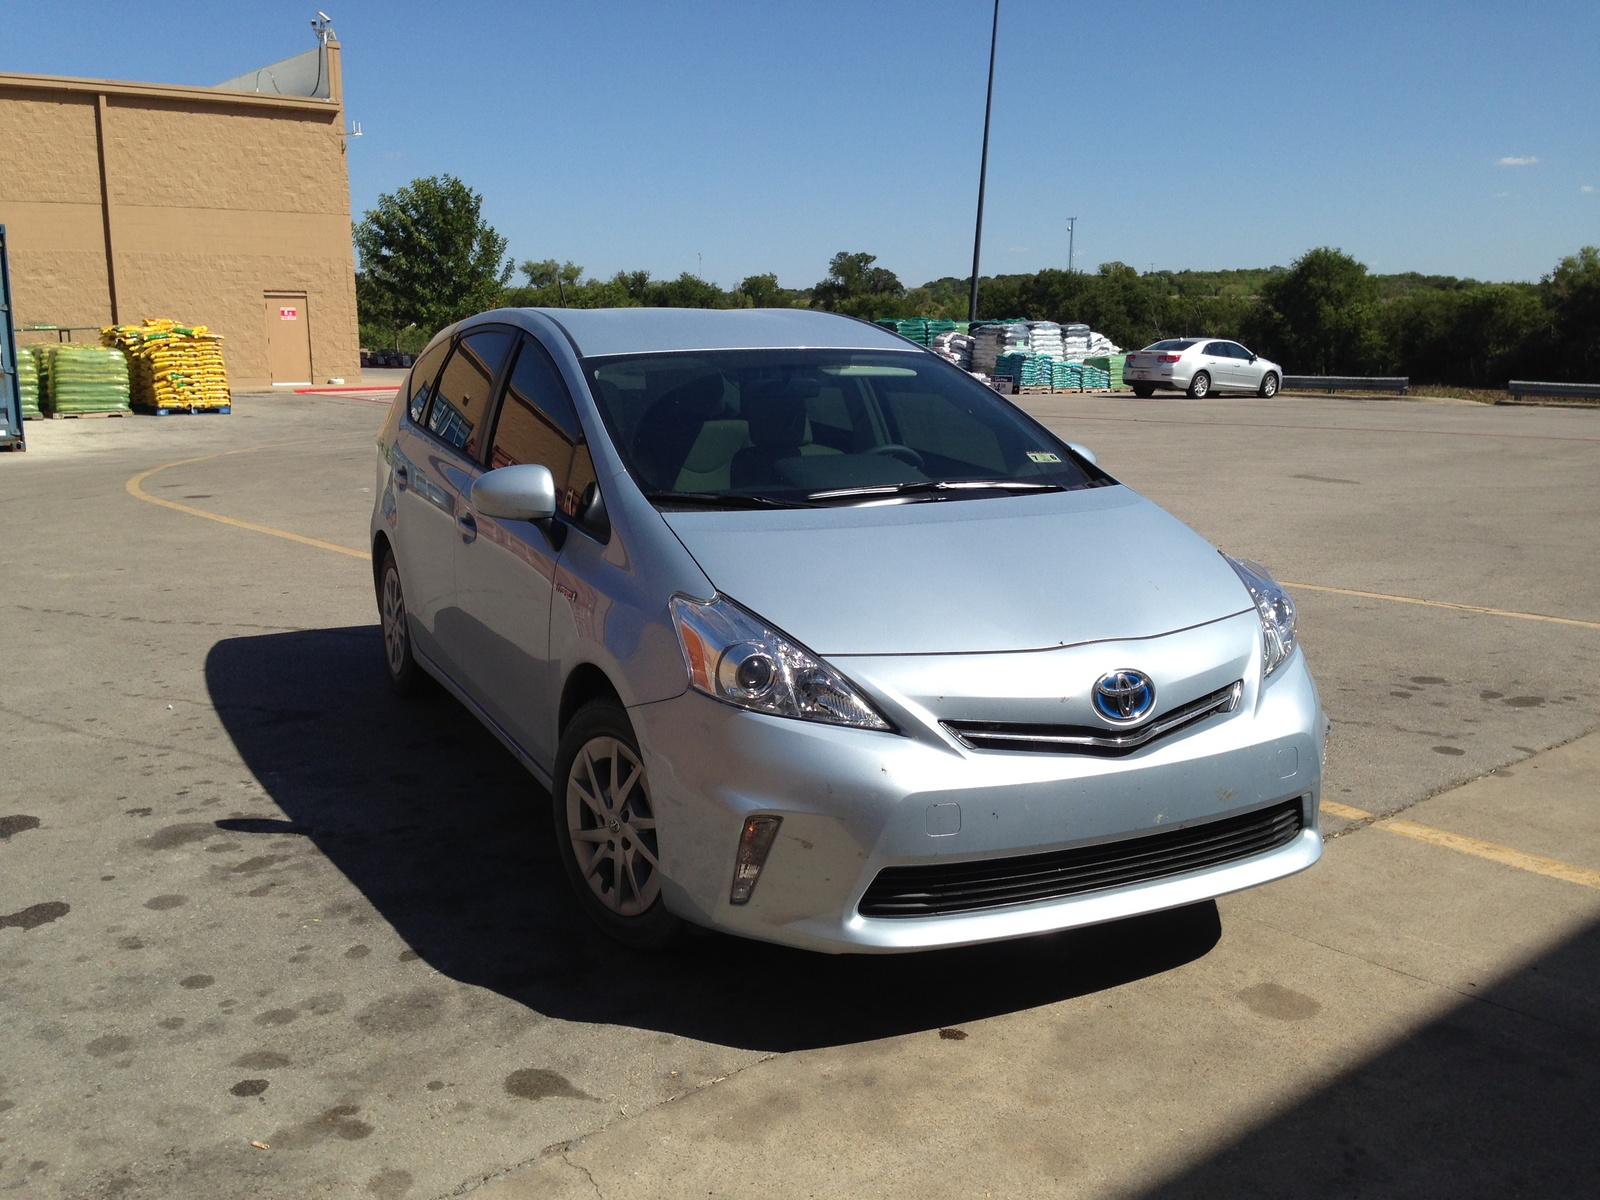 used toyota prius for sale charlotte nc cargurus autos post. Black Bedroom Furniture Sets. Home Design Ideas